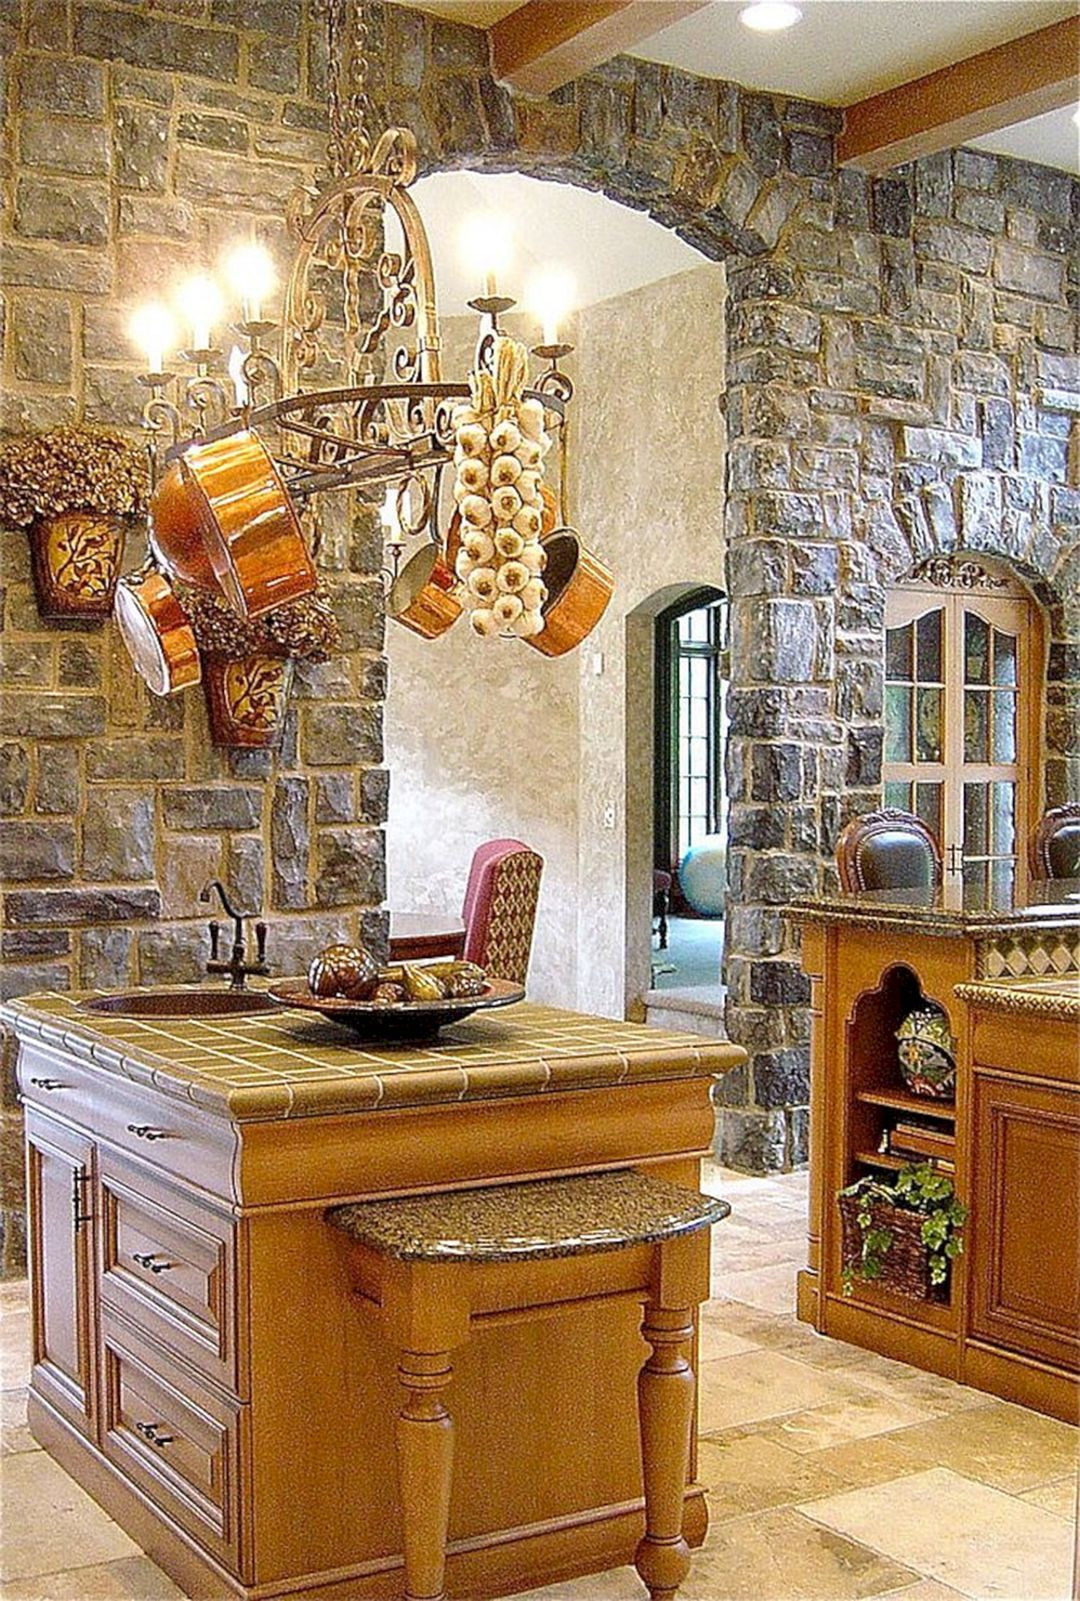 Astounding 25+ Extraordinary Rock Wall Design Ideas For ... on Traditional Kitchen Wall Decor  id=64566